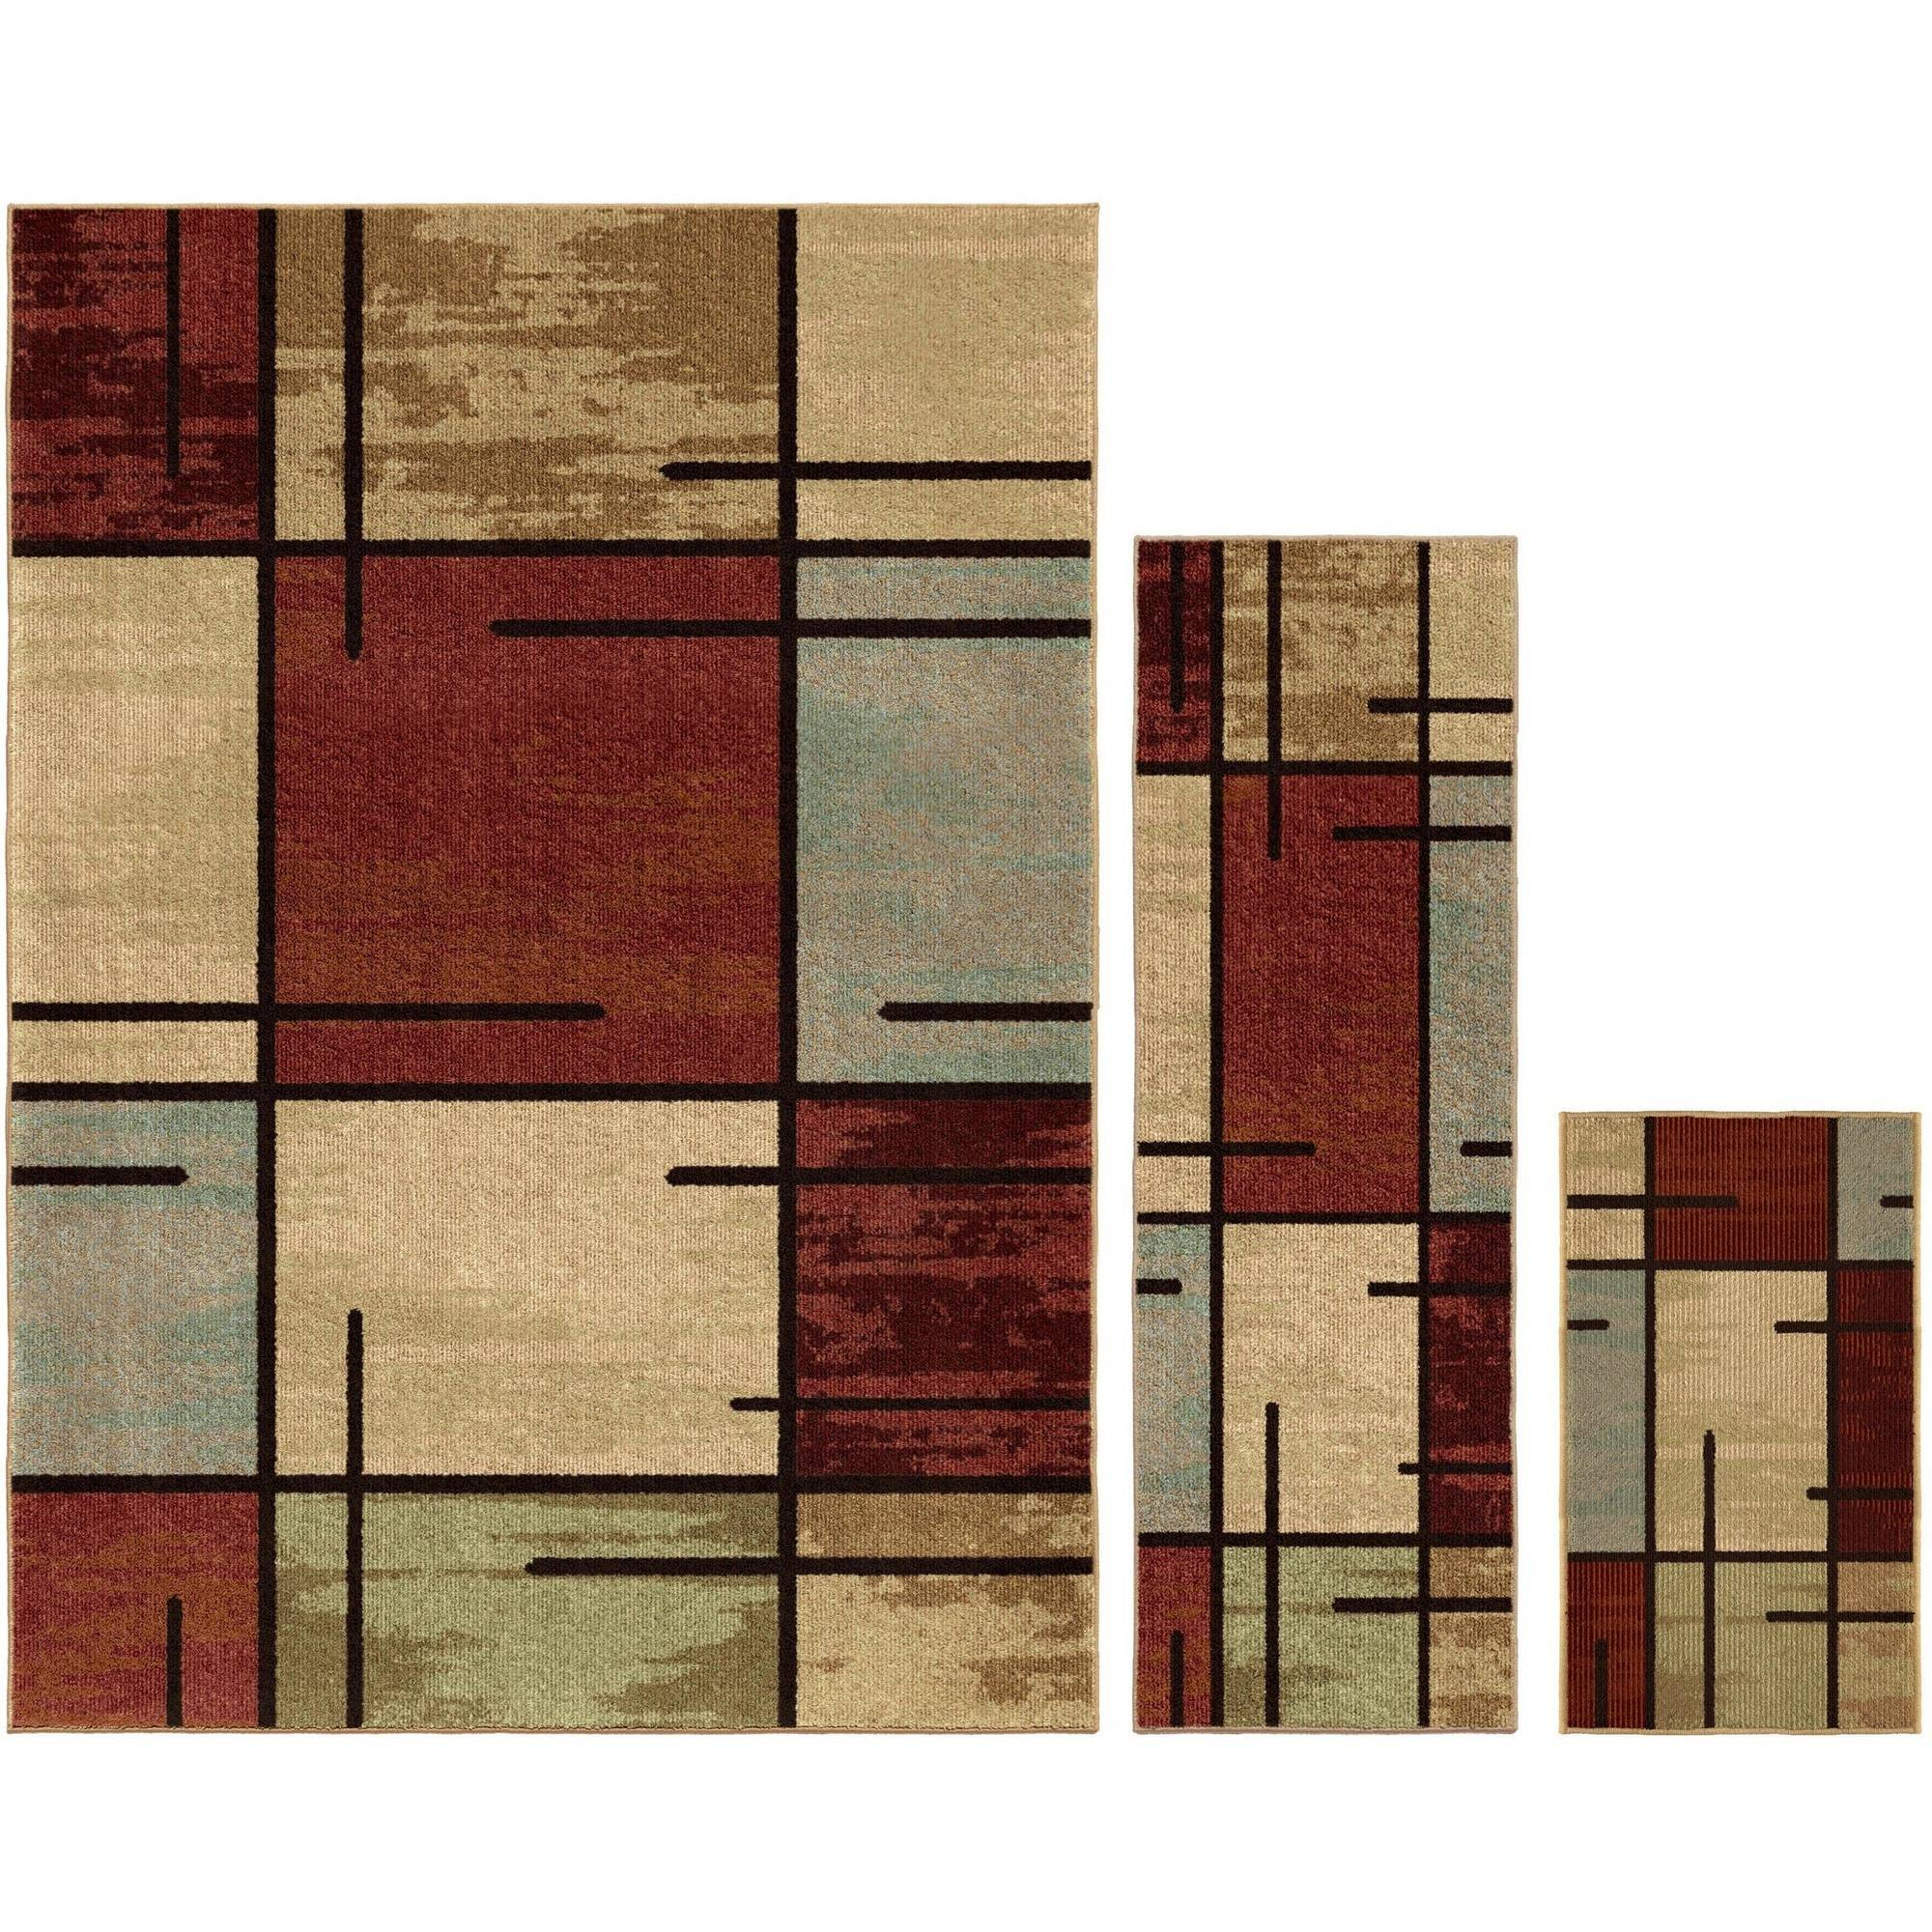 Better Homes and Gardens Spice Grid 3Piece Area Rug Set